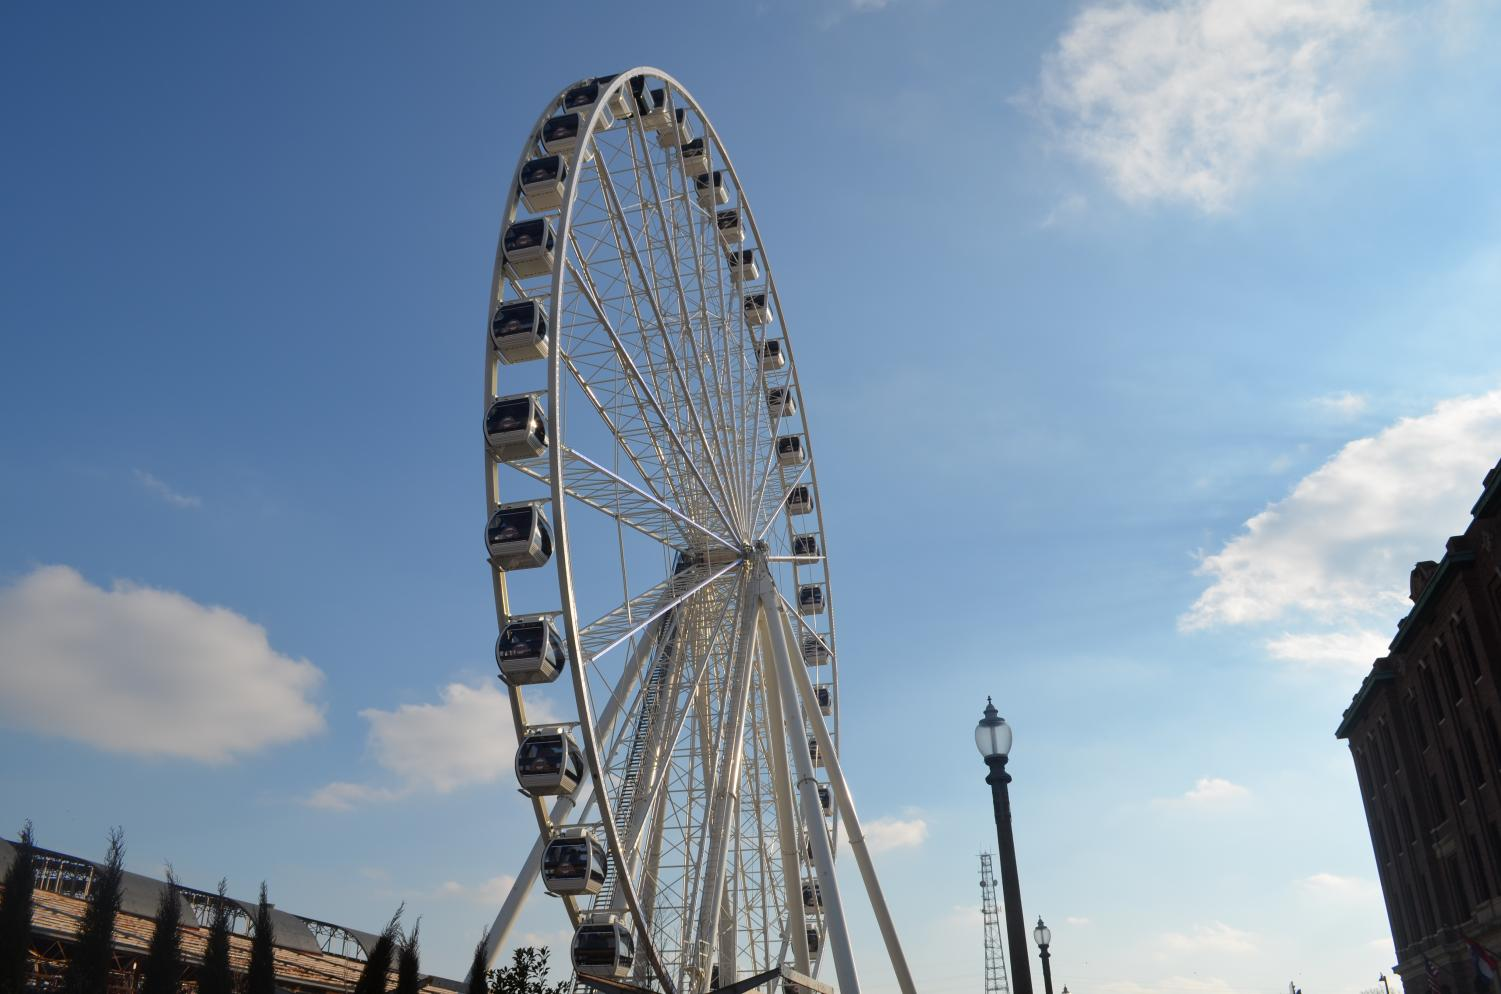 Tourists+enjoy+the+ride+on+the+200+ft+tall+attraction%2C+The+St.+Louis+Wheel.+The+wheel+takes+passengers+along+the+St.+Louis+skyline+during+the+15-minute+trip.+The+wheel+also+has+42+fully+enclosed+seats+that+are+climate+controlled+and+seat+up+to+six+adults+each.+